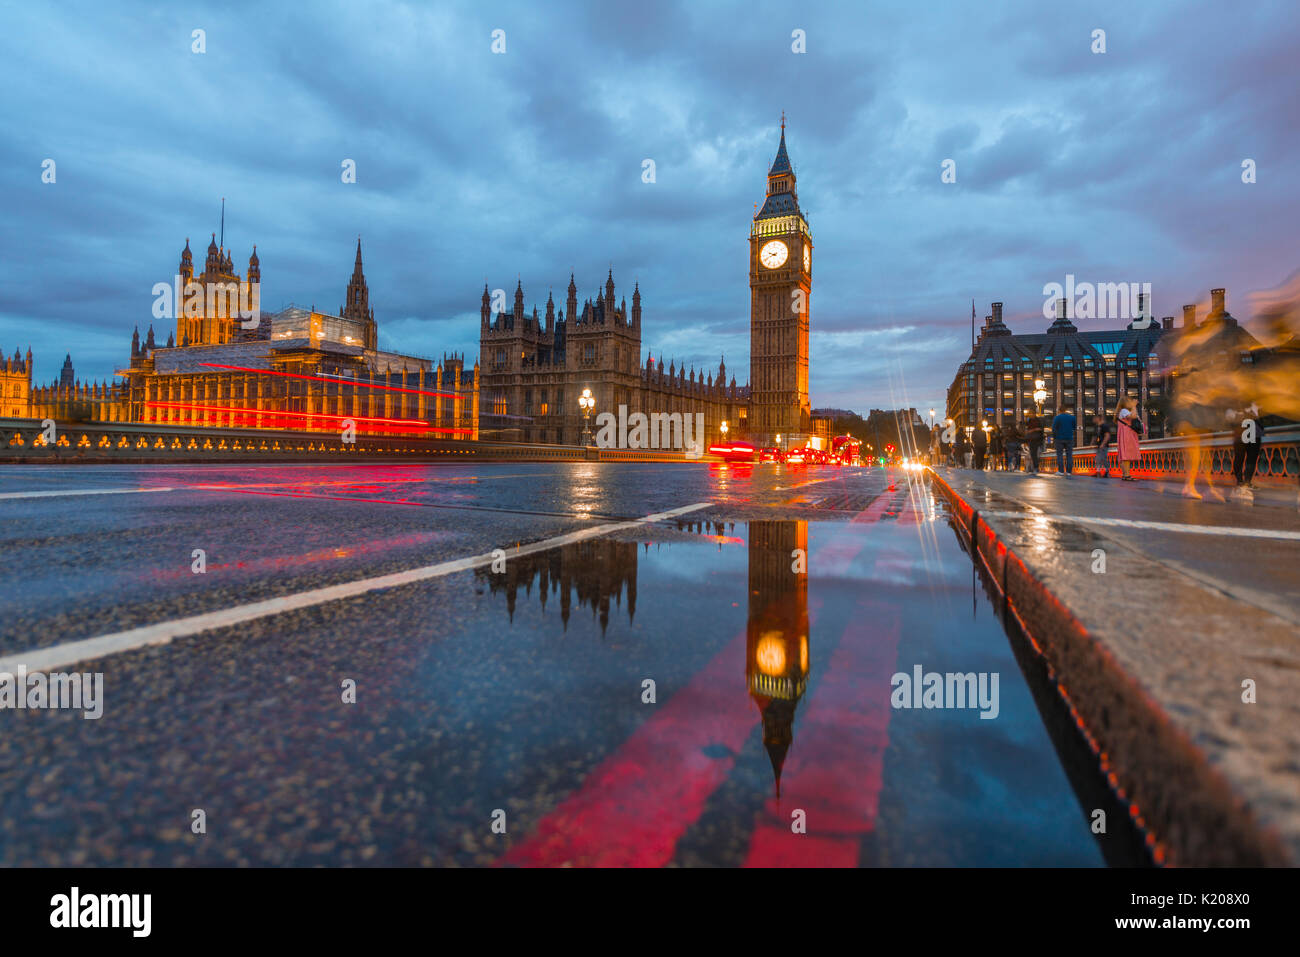 Die Westminster Bridge, Palast von Westminster, das Parlament mit Reflexion, Big Ben, Westminster, London, England Stockbild